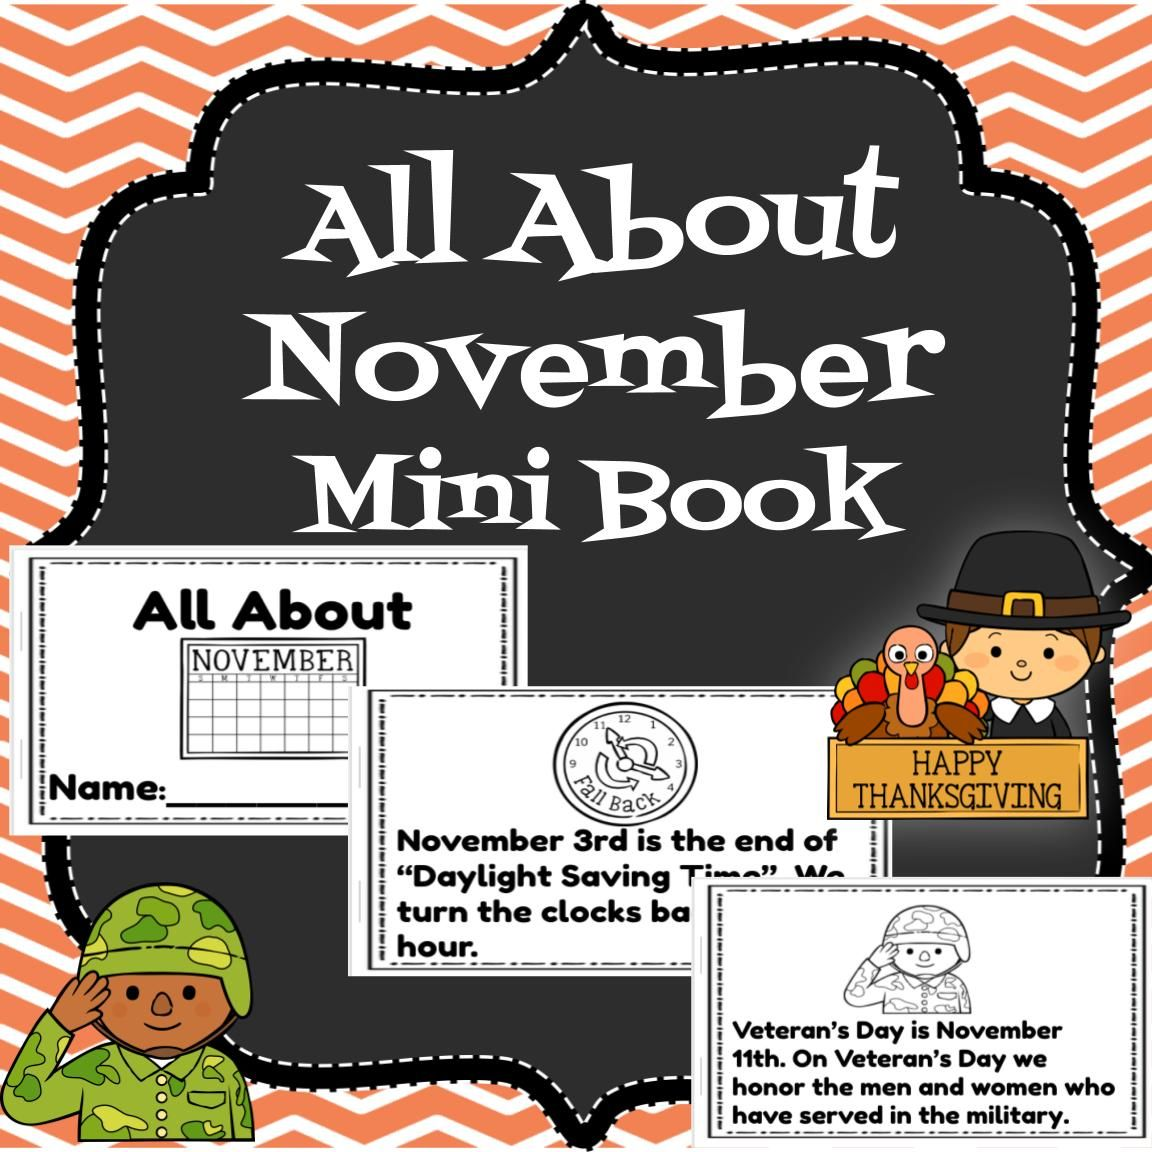 All About November Mini Book In